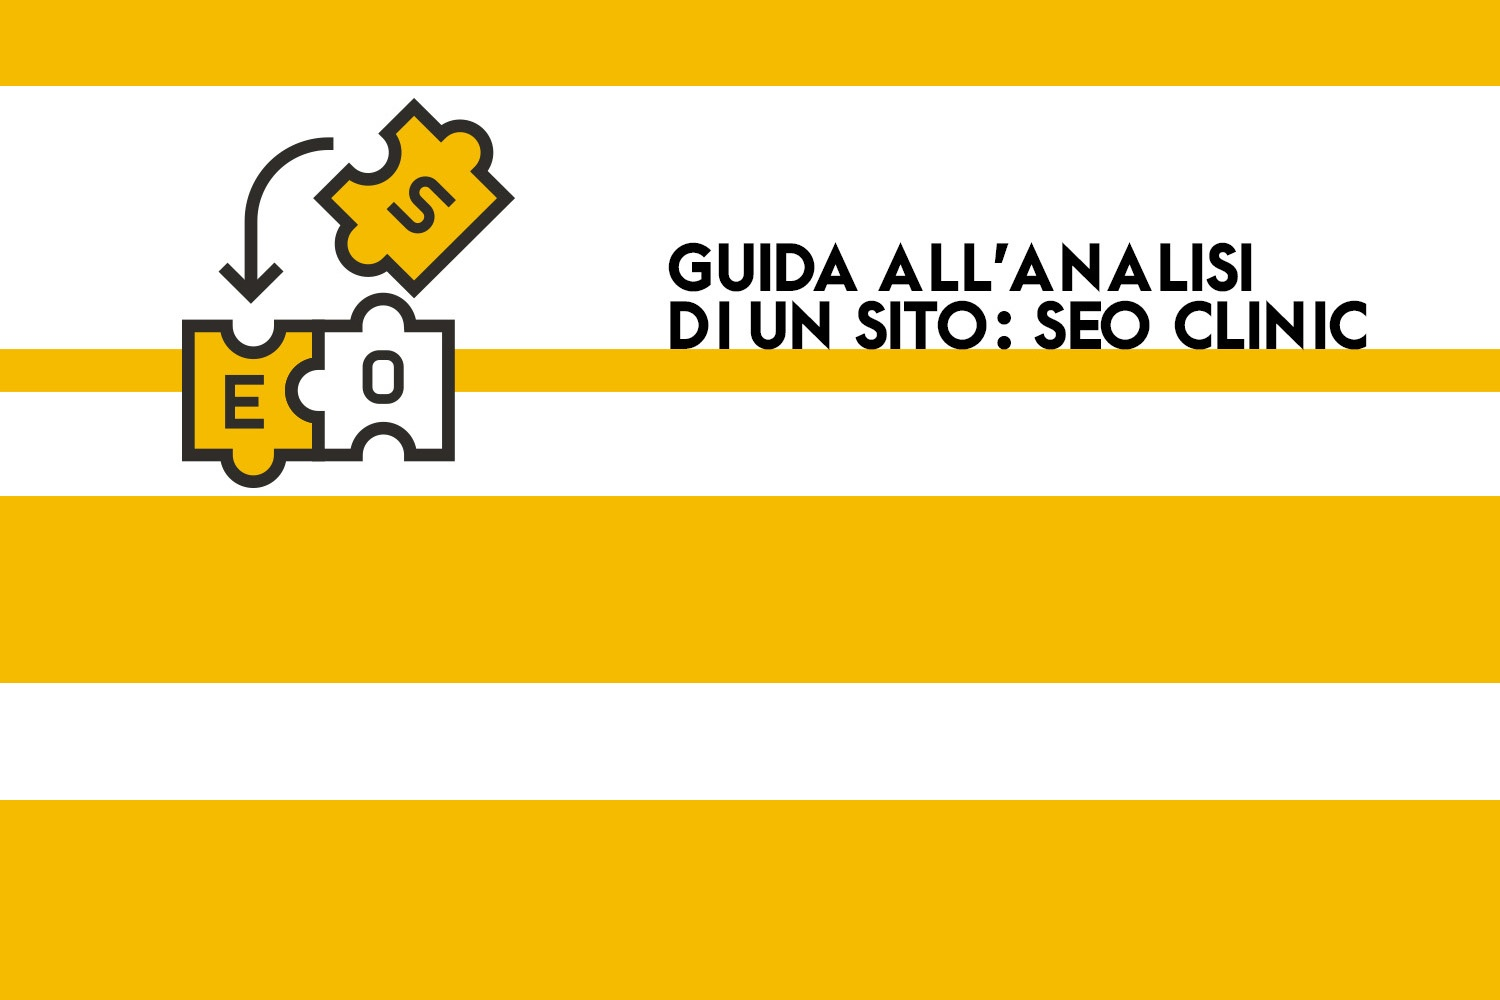 Le guide di OFG Advertising: SEO Clinic, guida all'analisi SEO di un sito